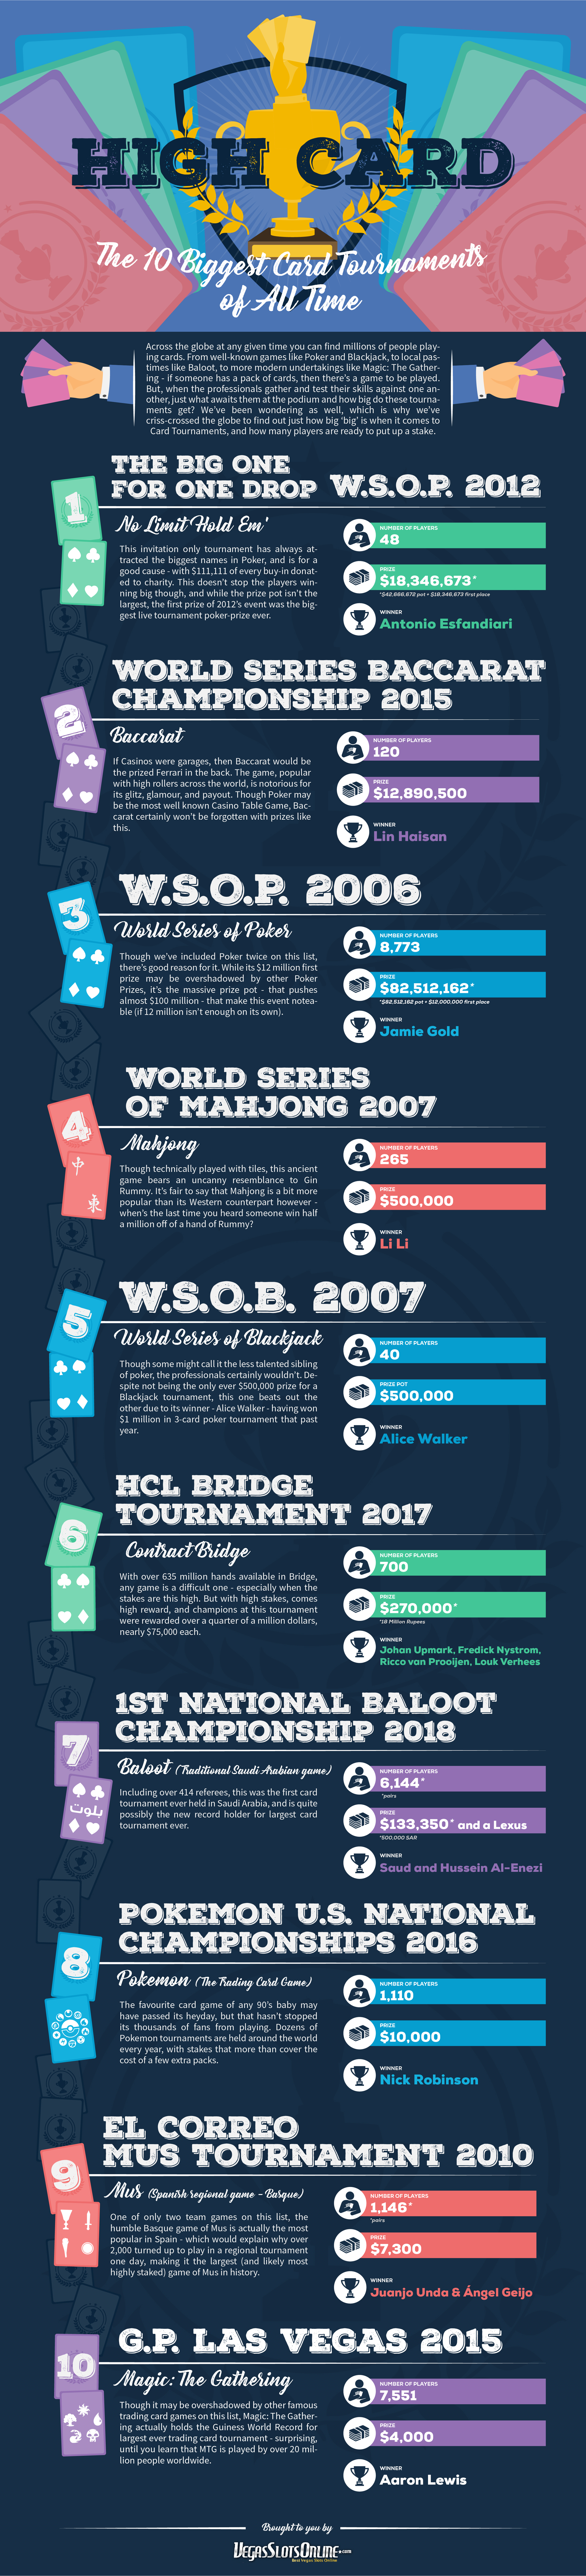 The biggest card tournaments in history [Infographic]